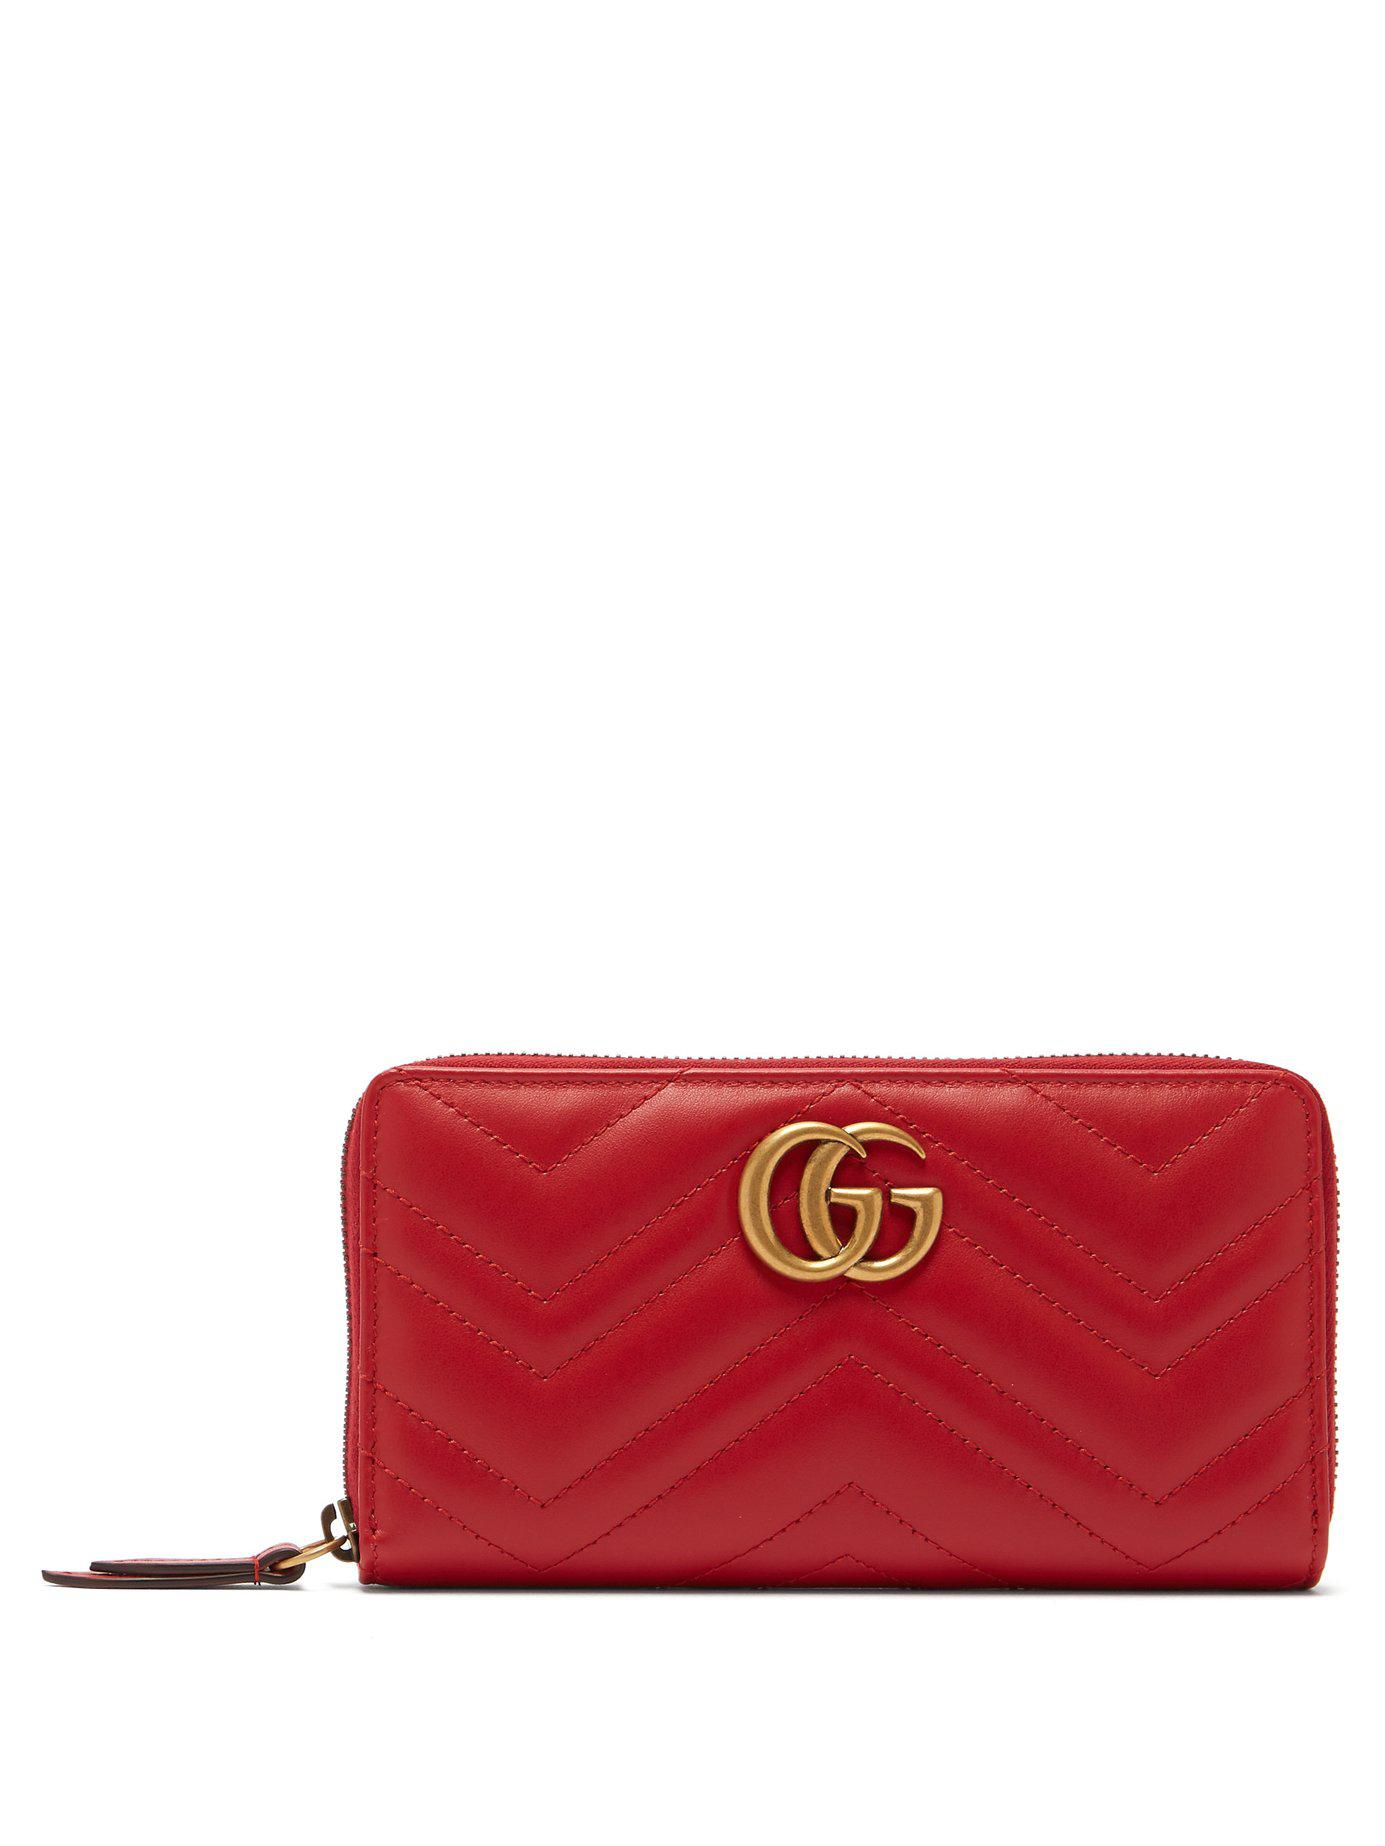 31e830af550fac Lyst - Gucci Gg Marmont Zip Around Wallet in Red - Save 31%